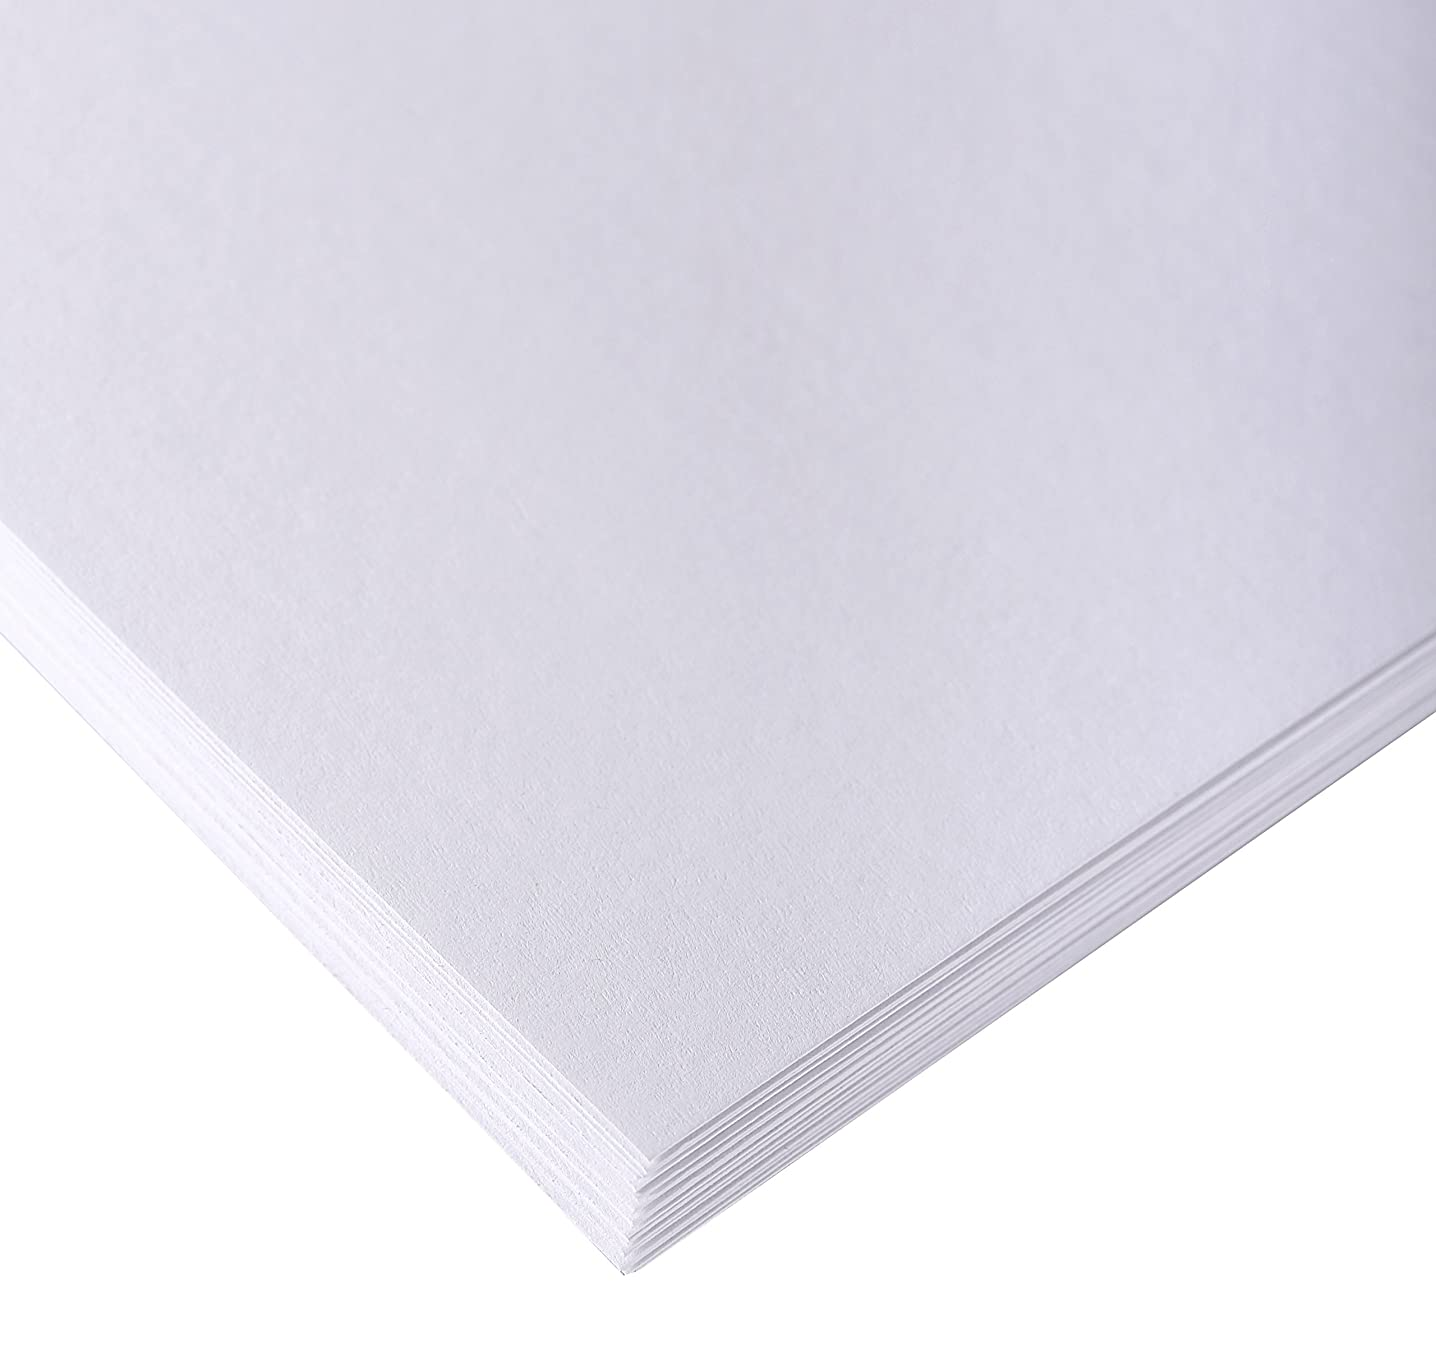 Clairefontaine 50 x 65 cm White Drawing Sketch Paper, 160 g, Pack 250 Sheets